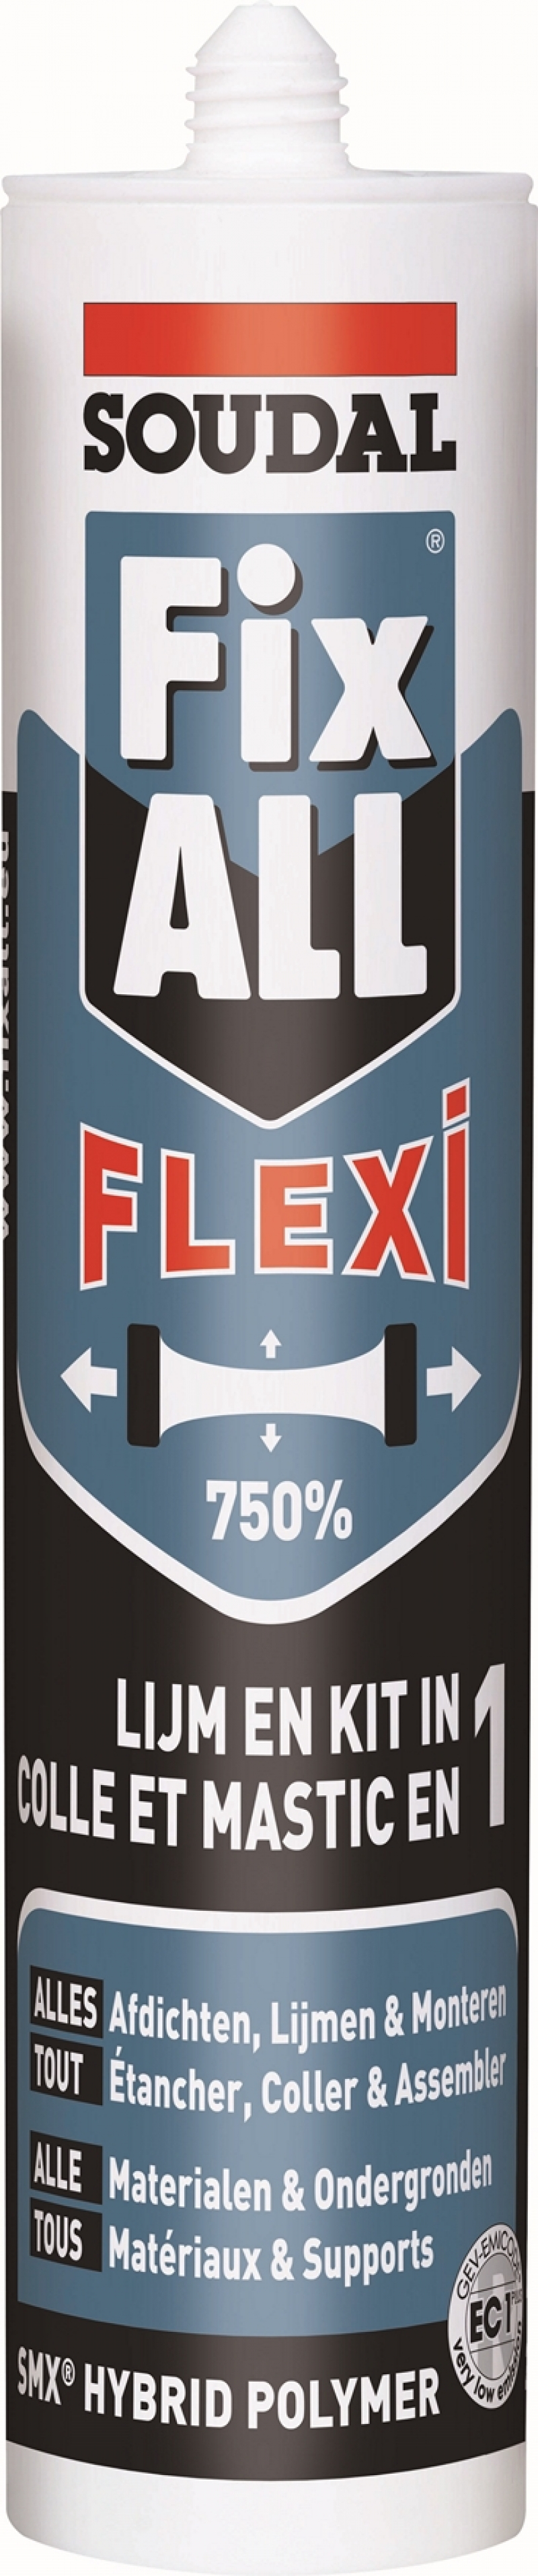 FIX ALL FLEXI (Classic)